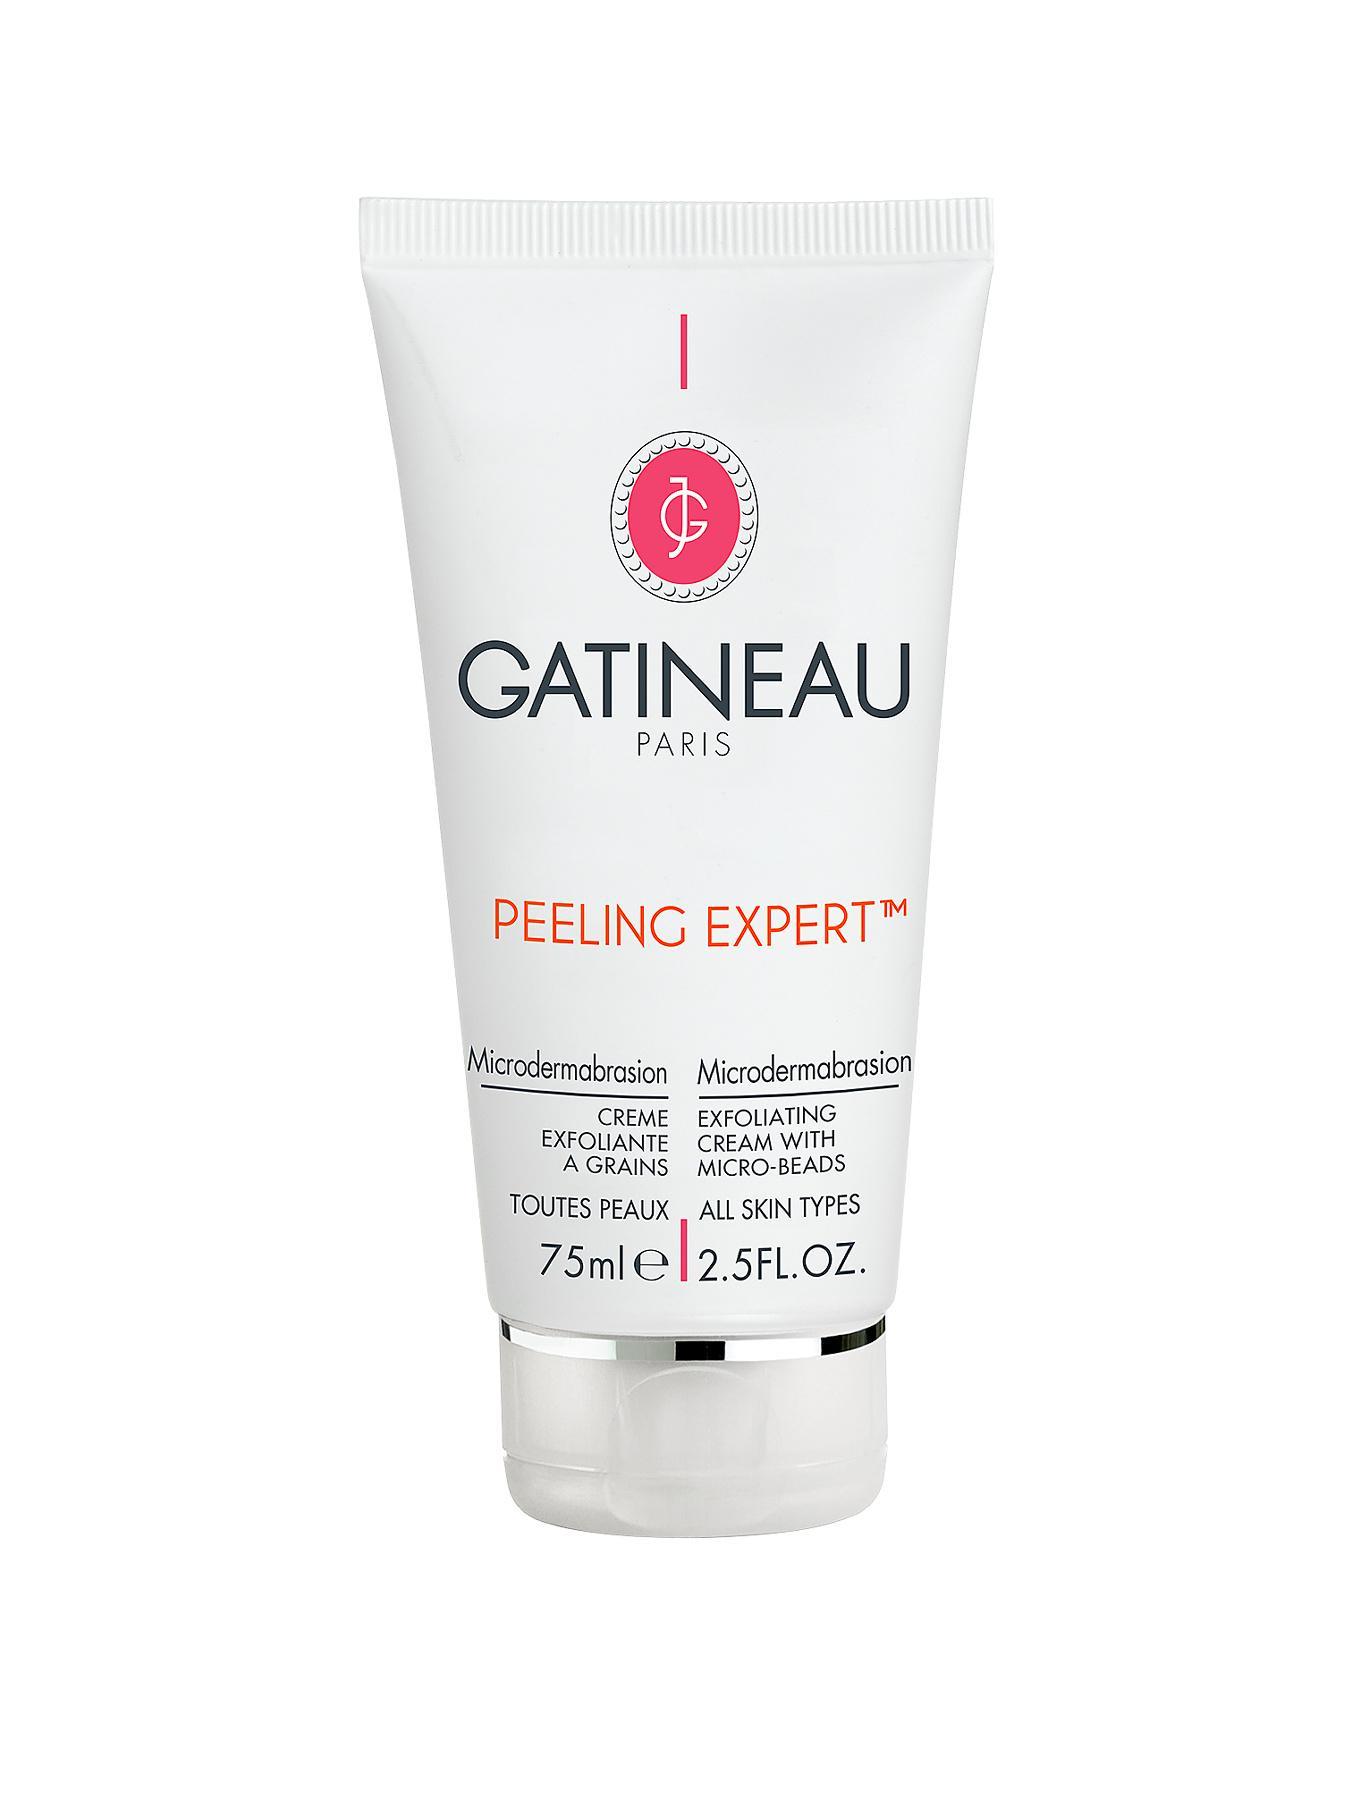 Gatineau Microdermabrasion Ultra-Exfoliating Cream with Bamboo Micro-Beads